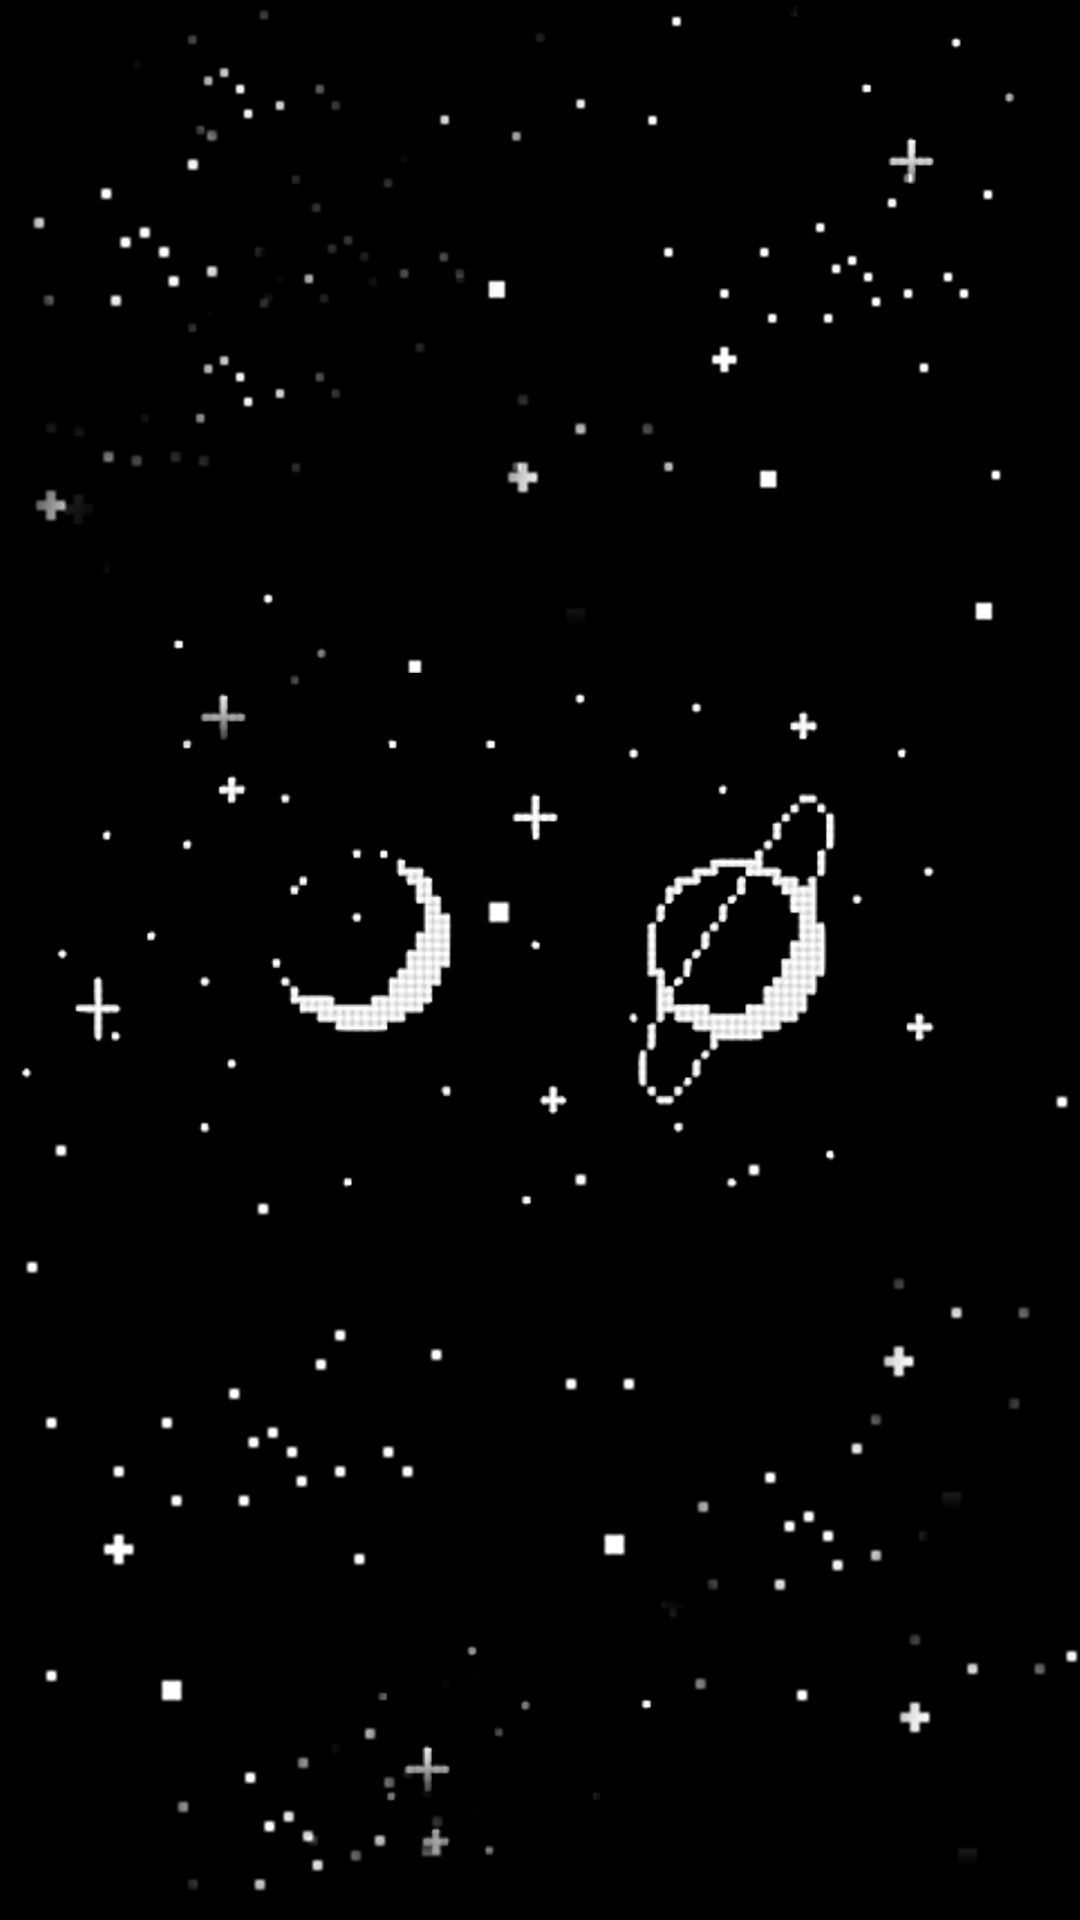 Aesthetic Space Android Background Black Wallpaper Iphone Aesthetic Iphone Wallpaper Black Aesthetic Wallpaper